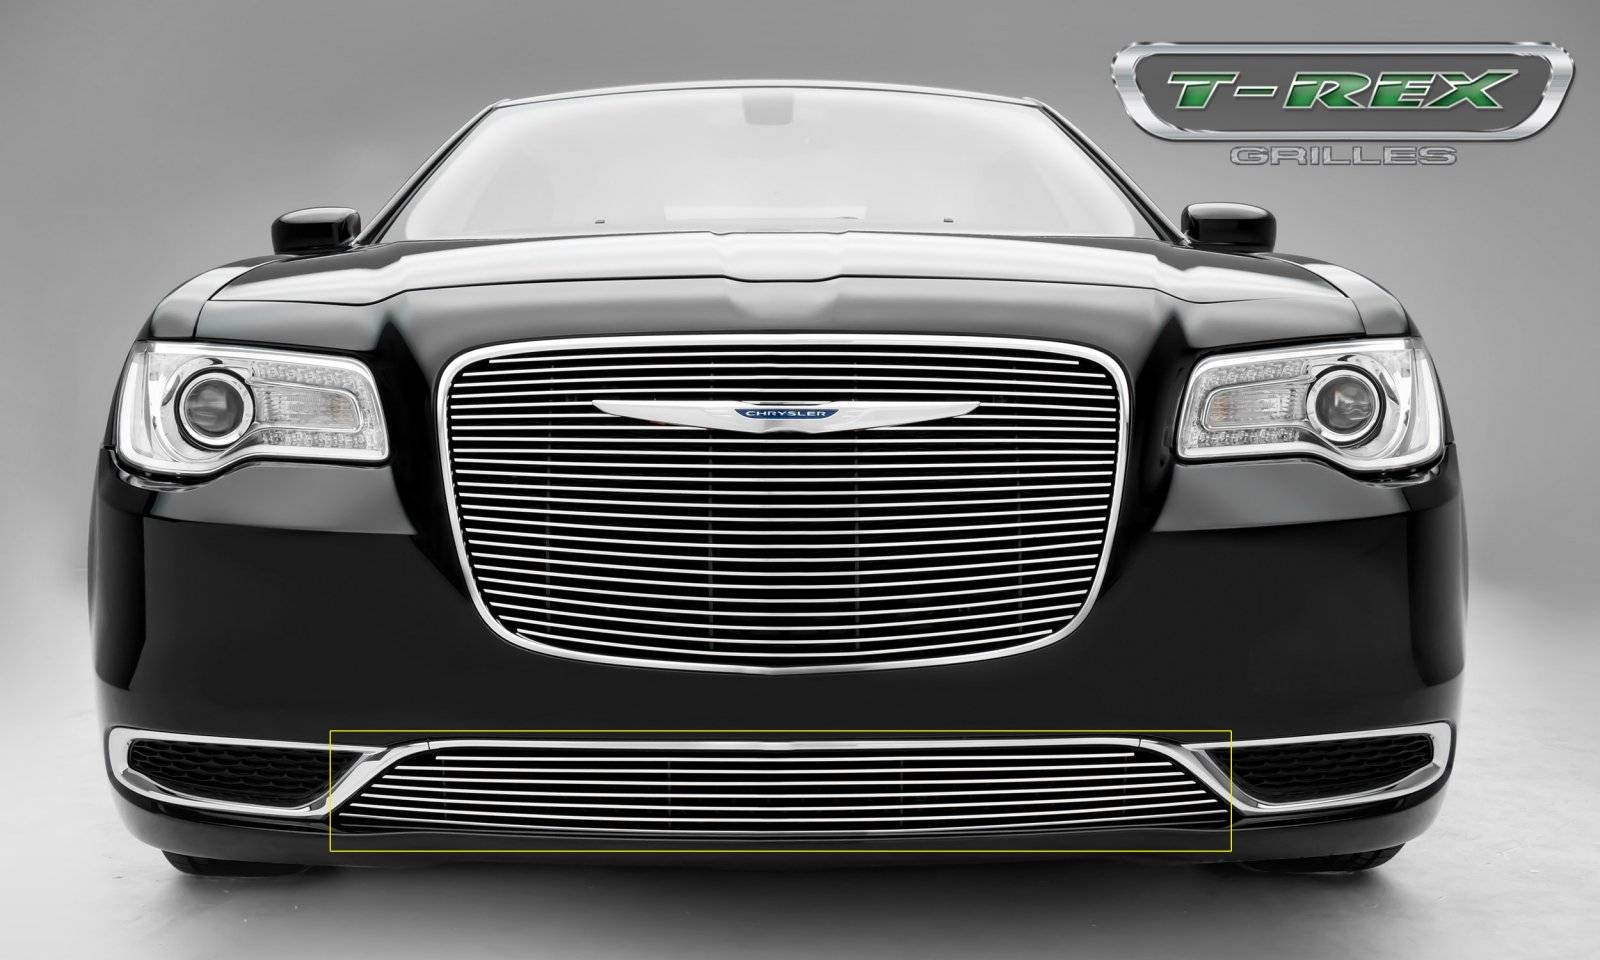 T-REX Chrysler 300 - Billet Series - Bumper Grille Overlay with Black Powder Coat Aluminum Bars and Polished Face - Pt # 25436